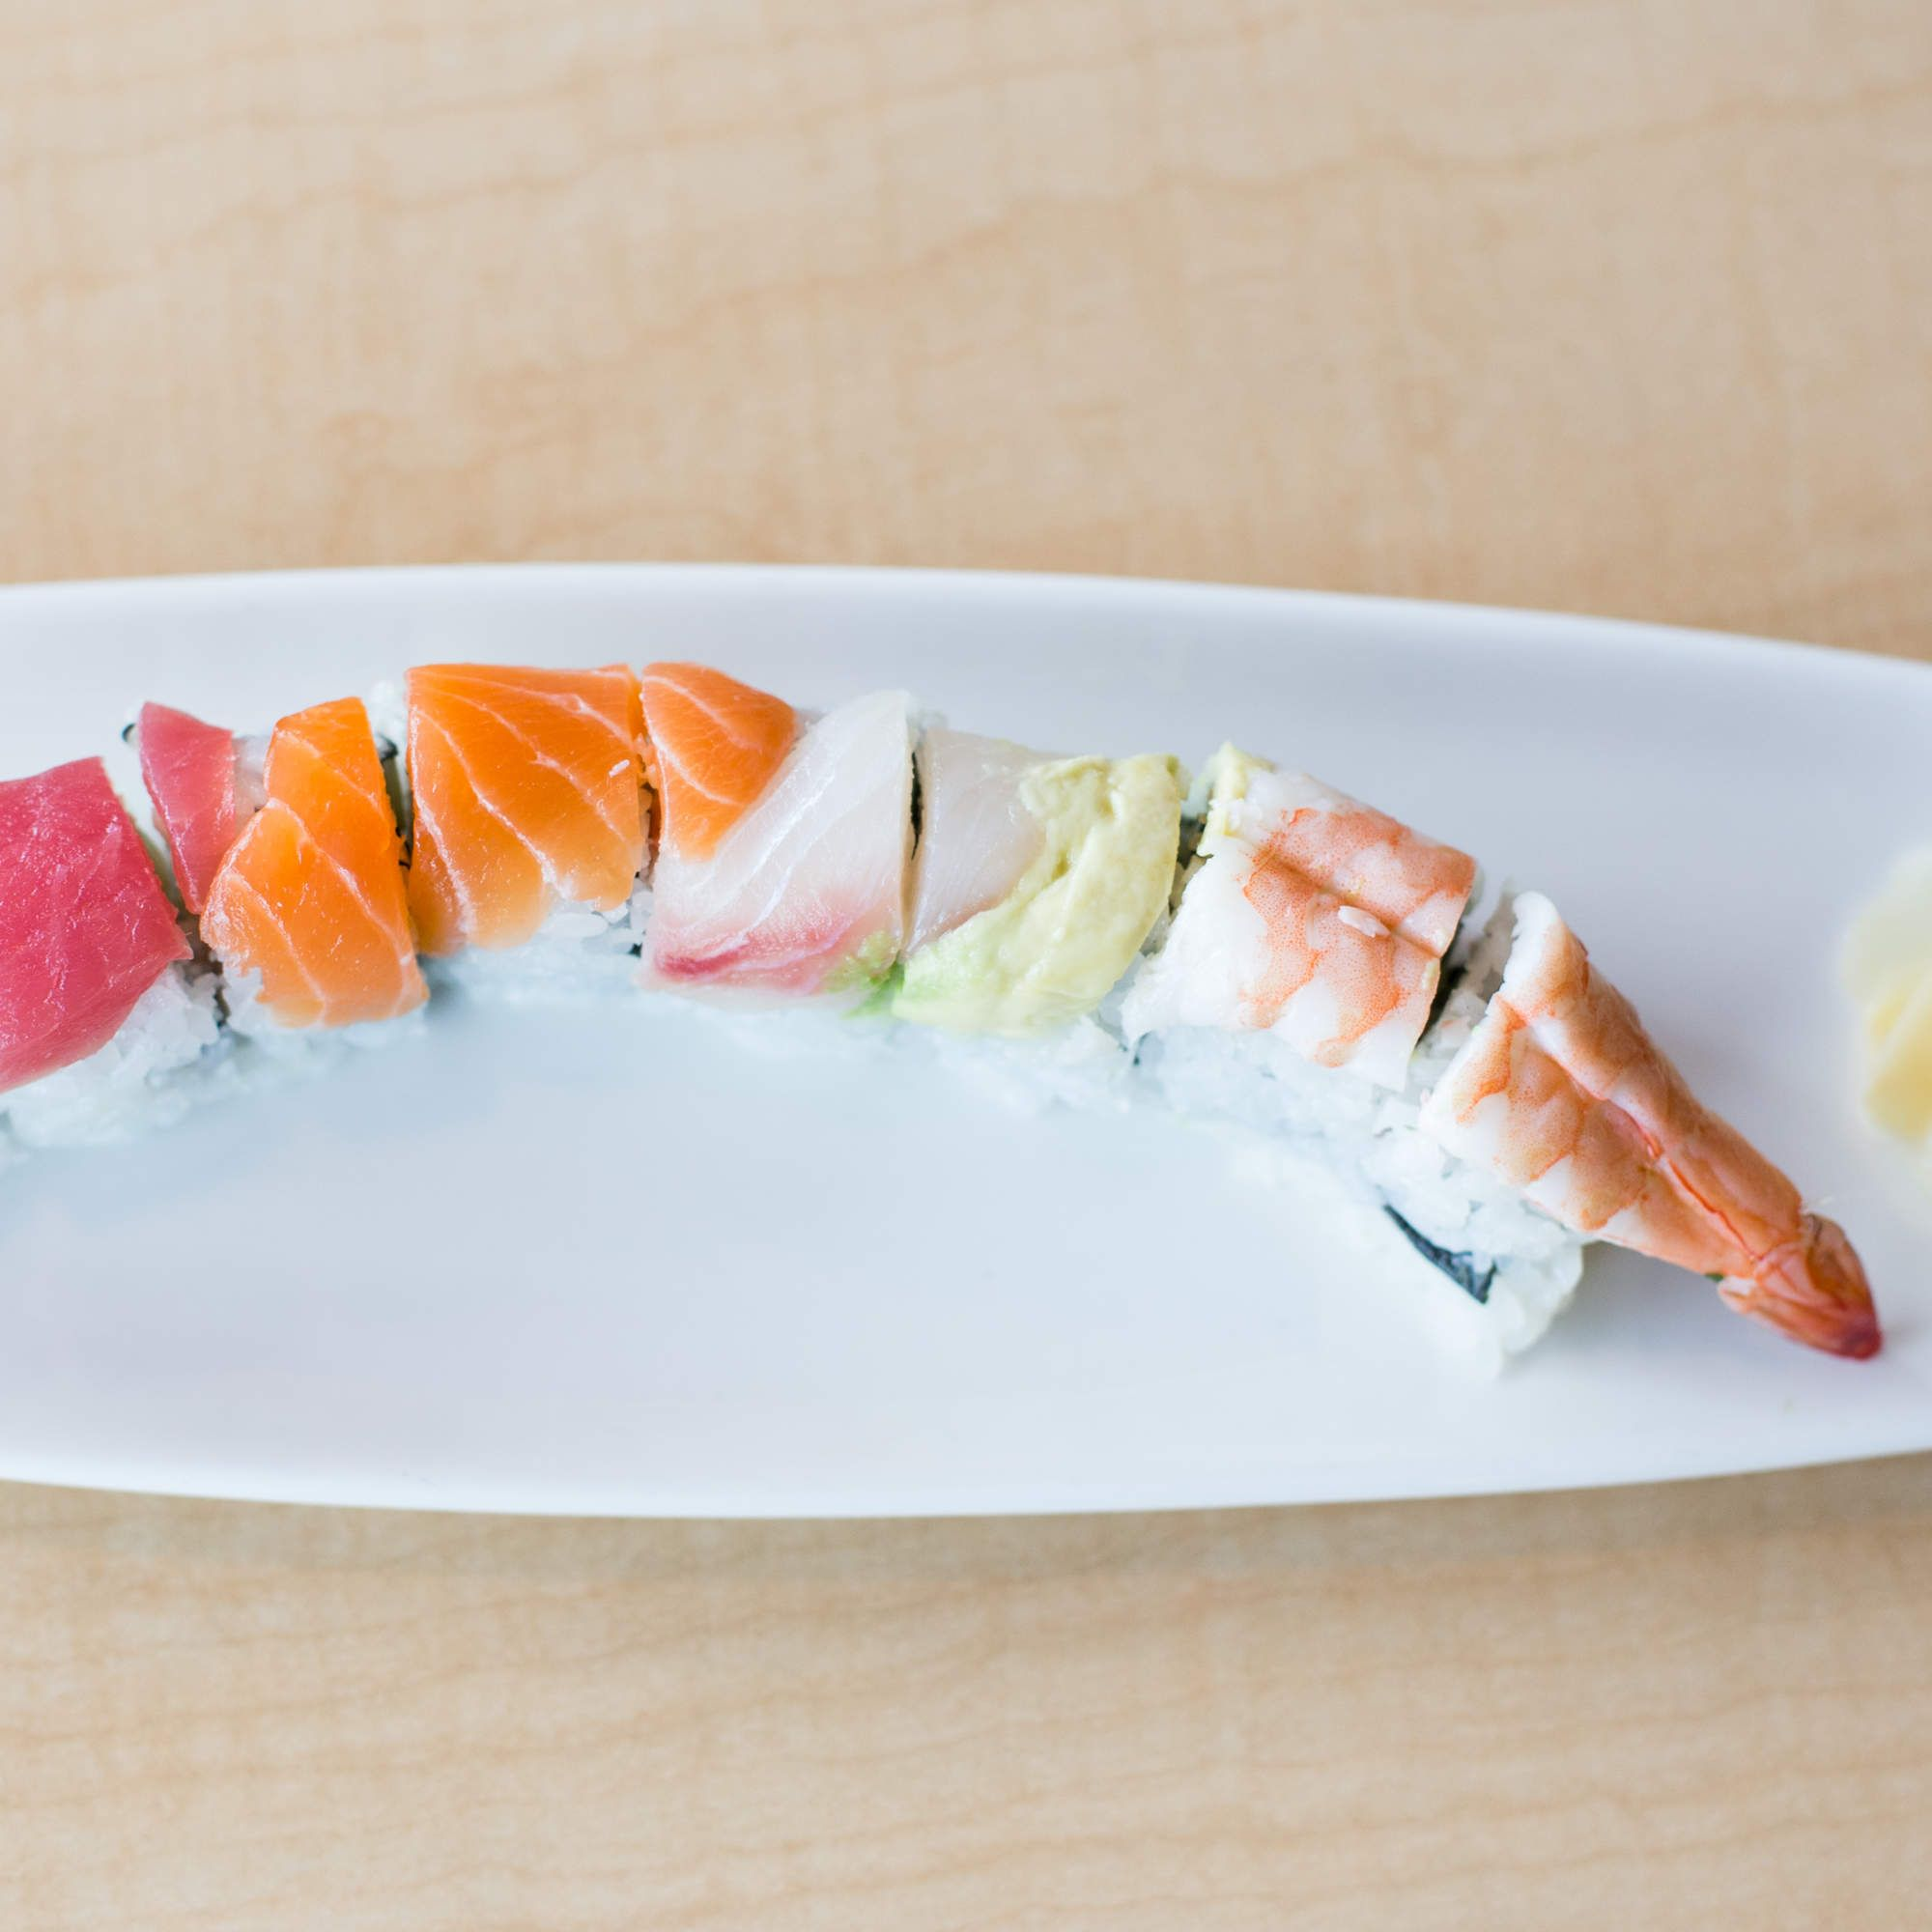 The 9 Most Popular Sushi Rolls - rainbow roll   http://naperville.shintoexperience.com/